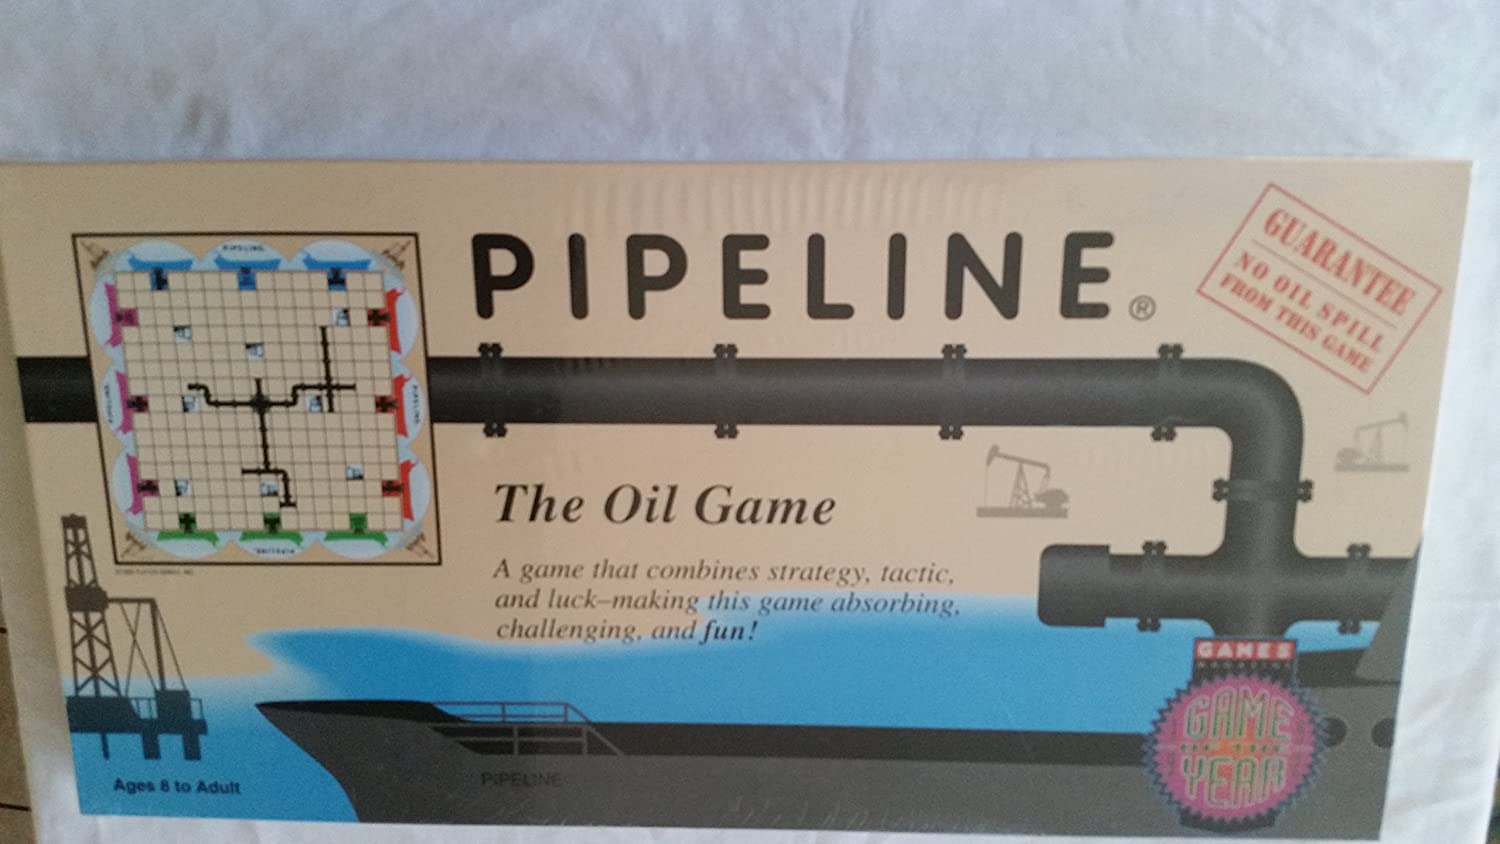 2-4 Players; Ages 8 + Playco Hawaii Inc. The Oil Game Pipeline